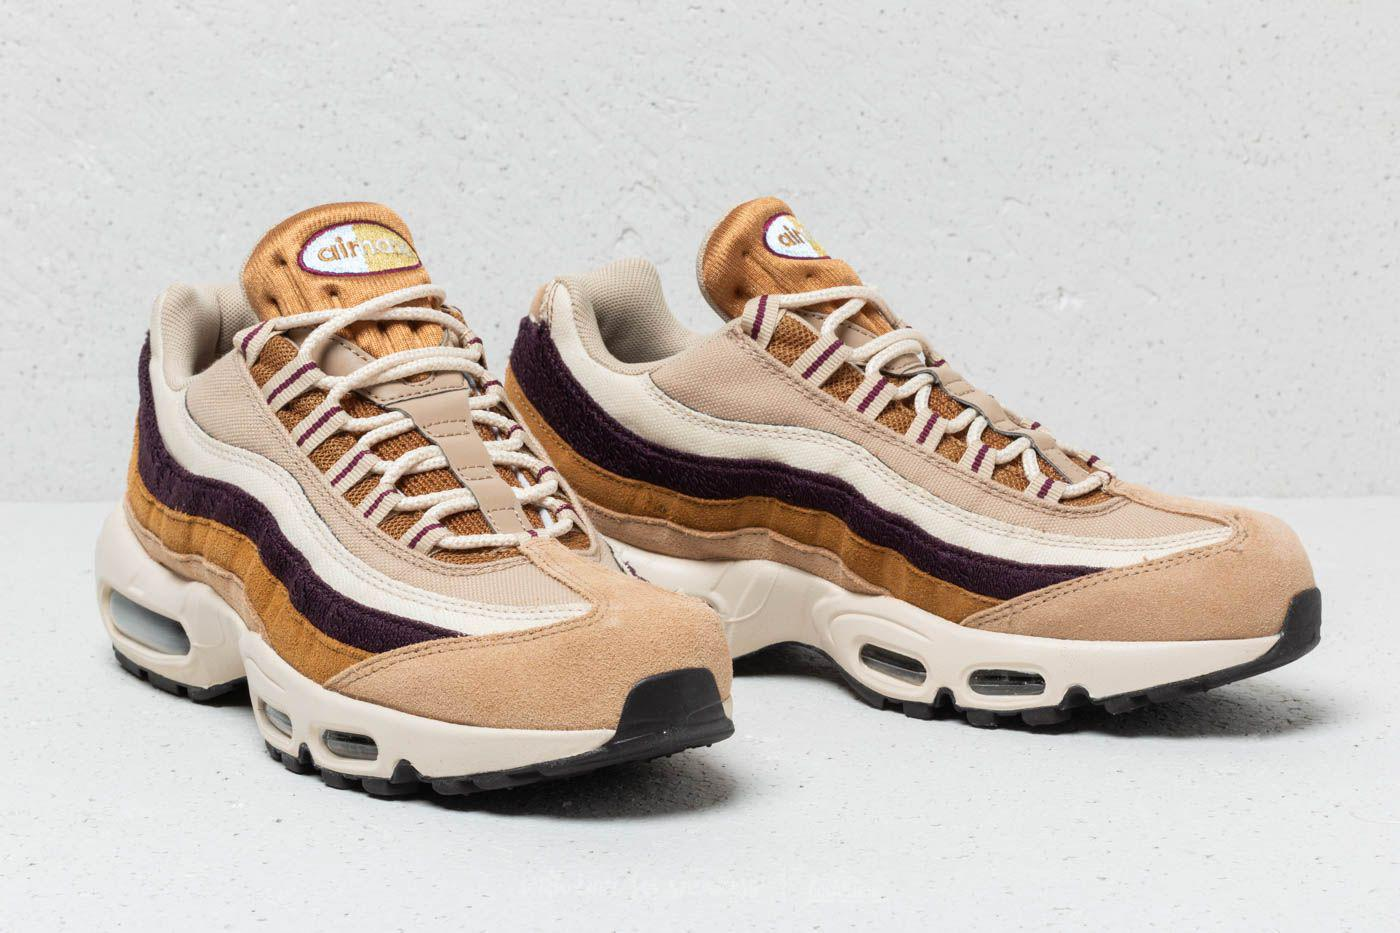 low cost nike air max 95 green spain c6760 5a6c2 f2013436c